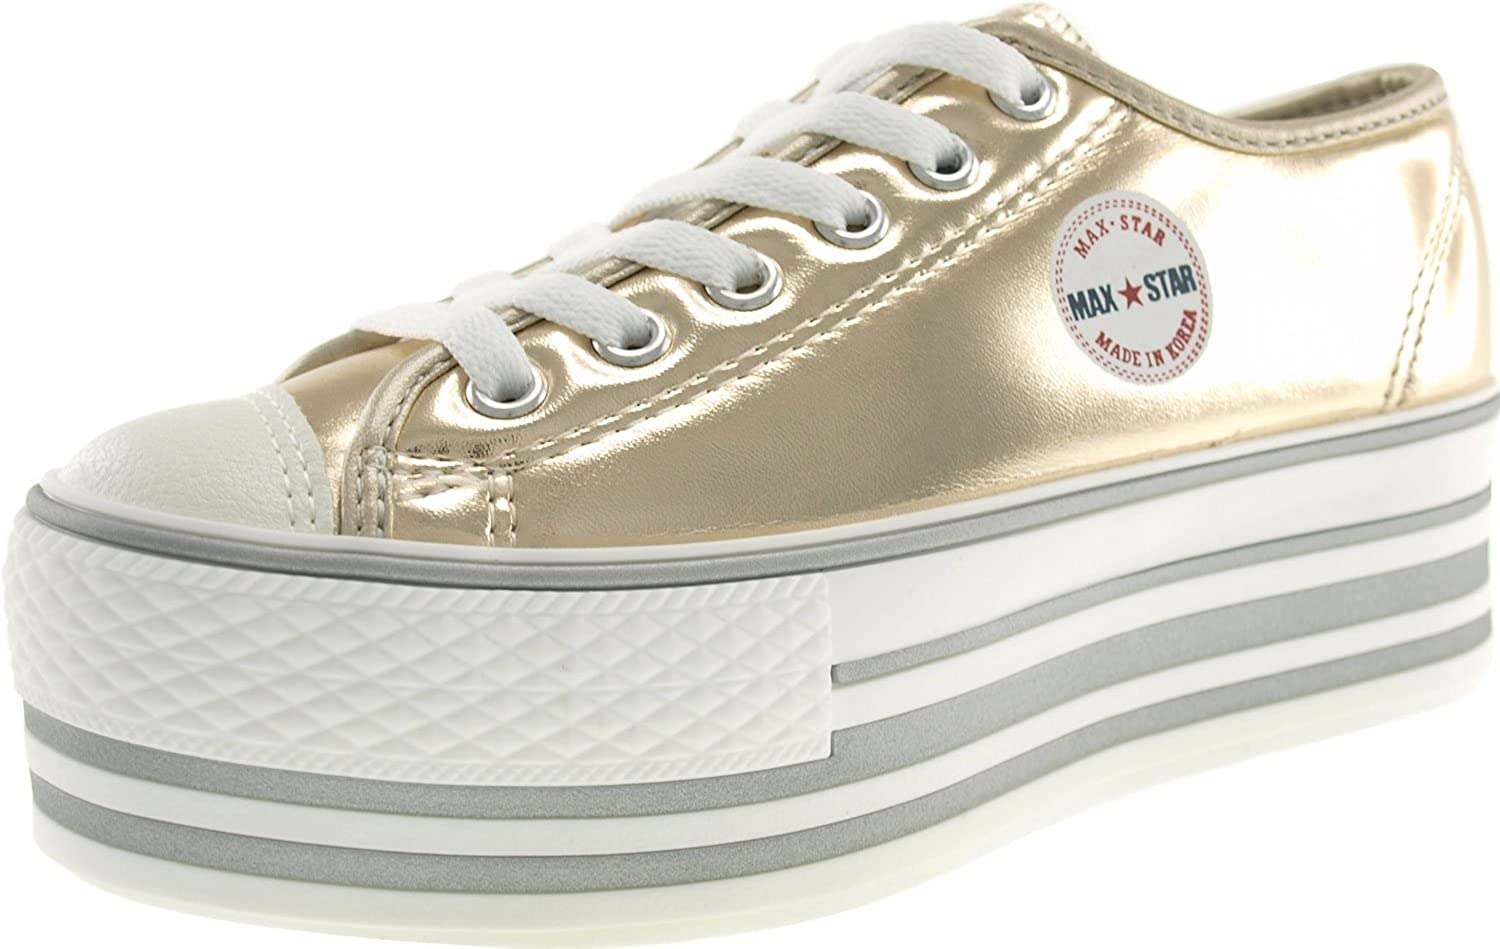 Maxstar Metalic colord Low-top Platform Synthetic Leather Sneakers shoes